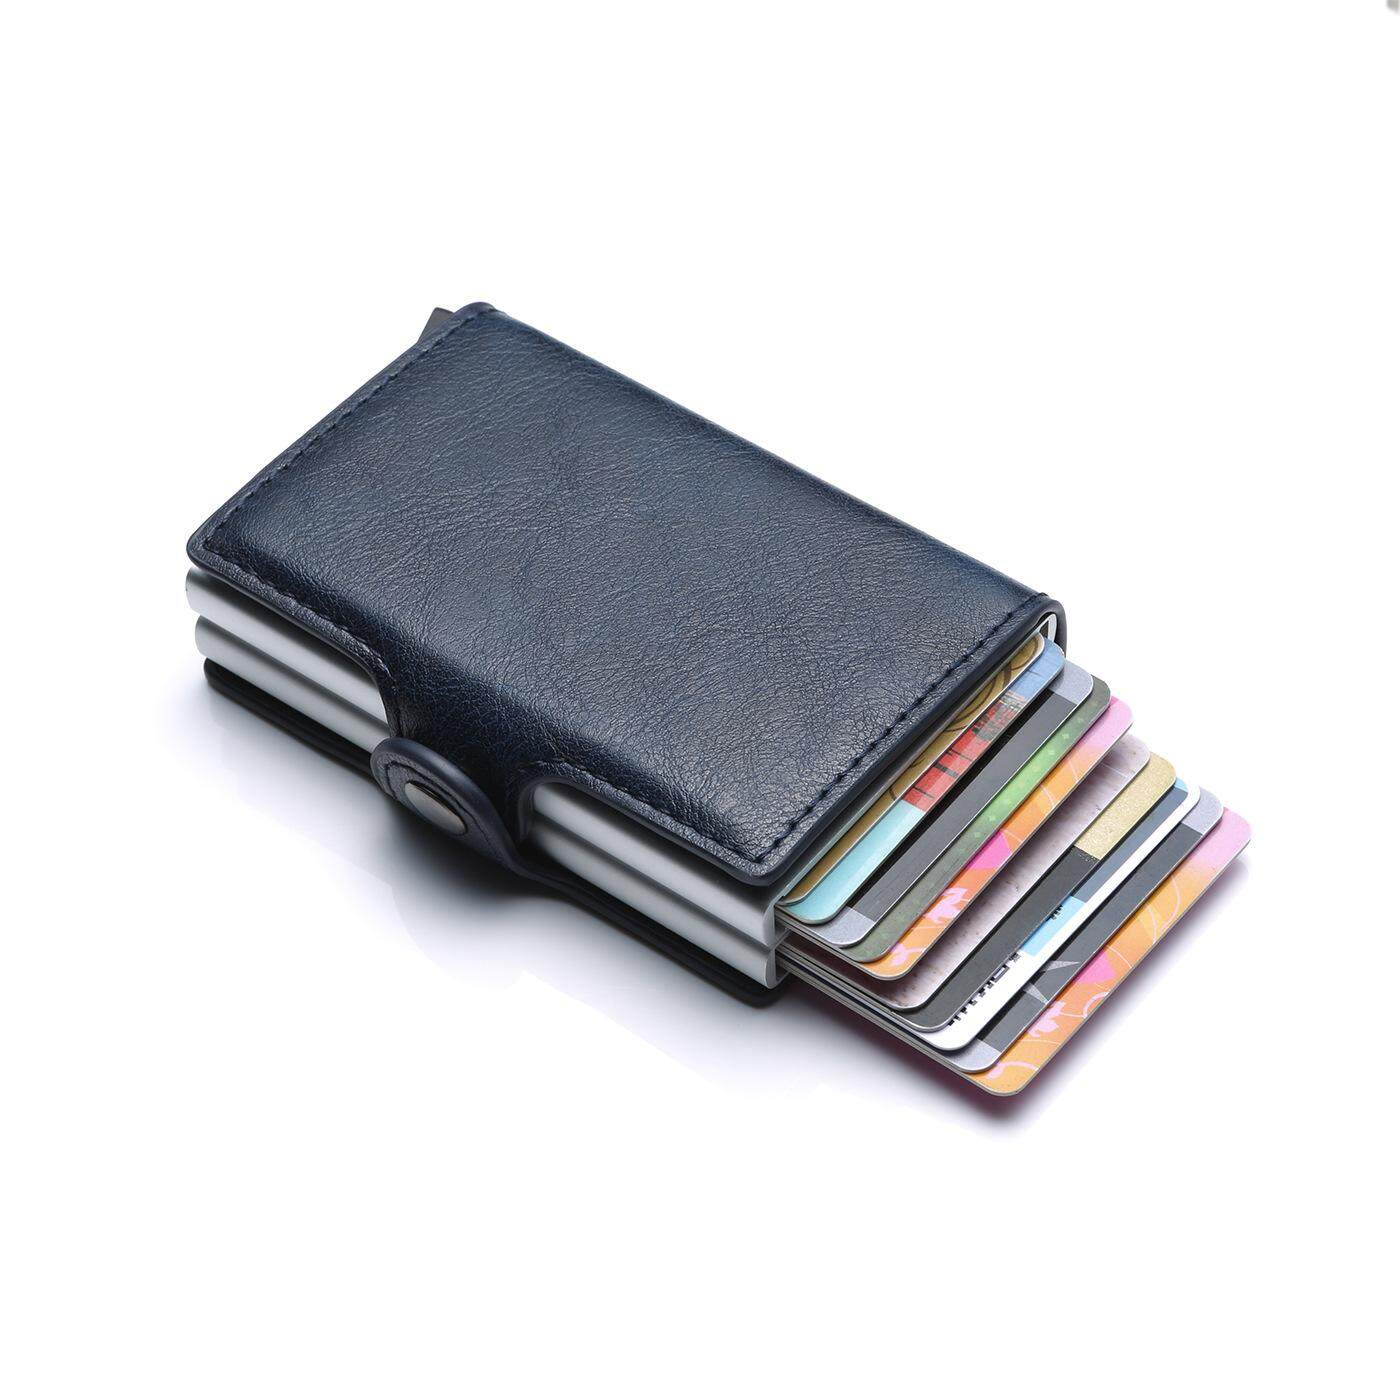 7778c23cd94a 2019 PU Leather RFID Blocking Aluminum Credit Card Holder Money Clip  Automatic Pop Up Slide Out Front Pocket Wallet Double Aluminum Card Wallets  Black